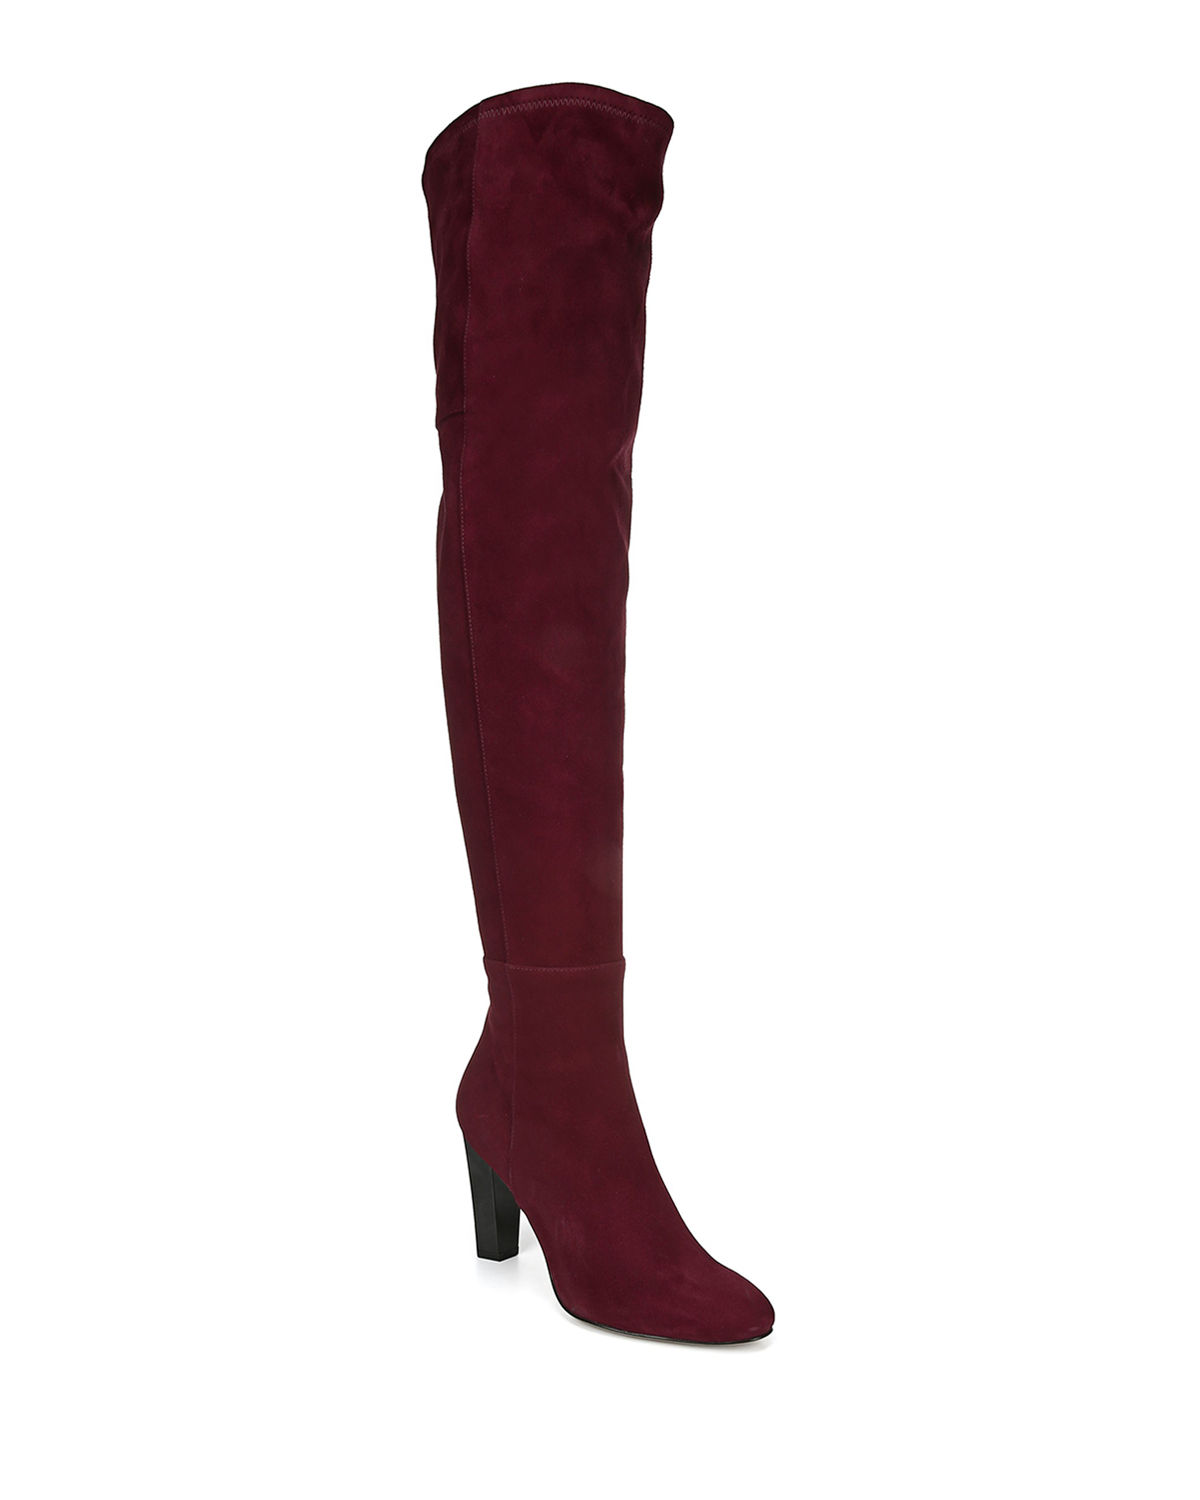 Deana Suede Over-the-Knee Boots